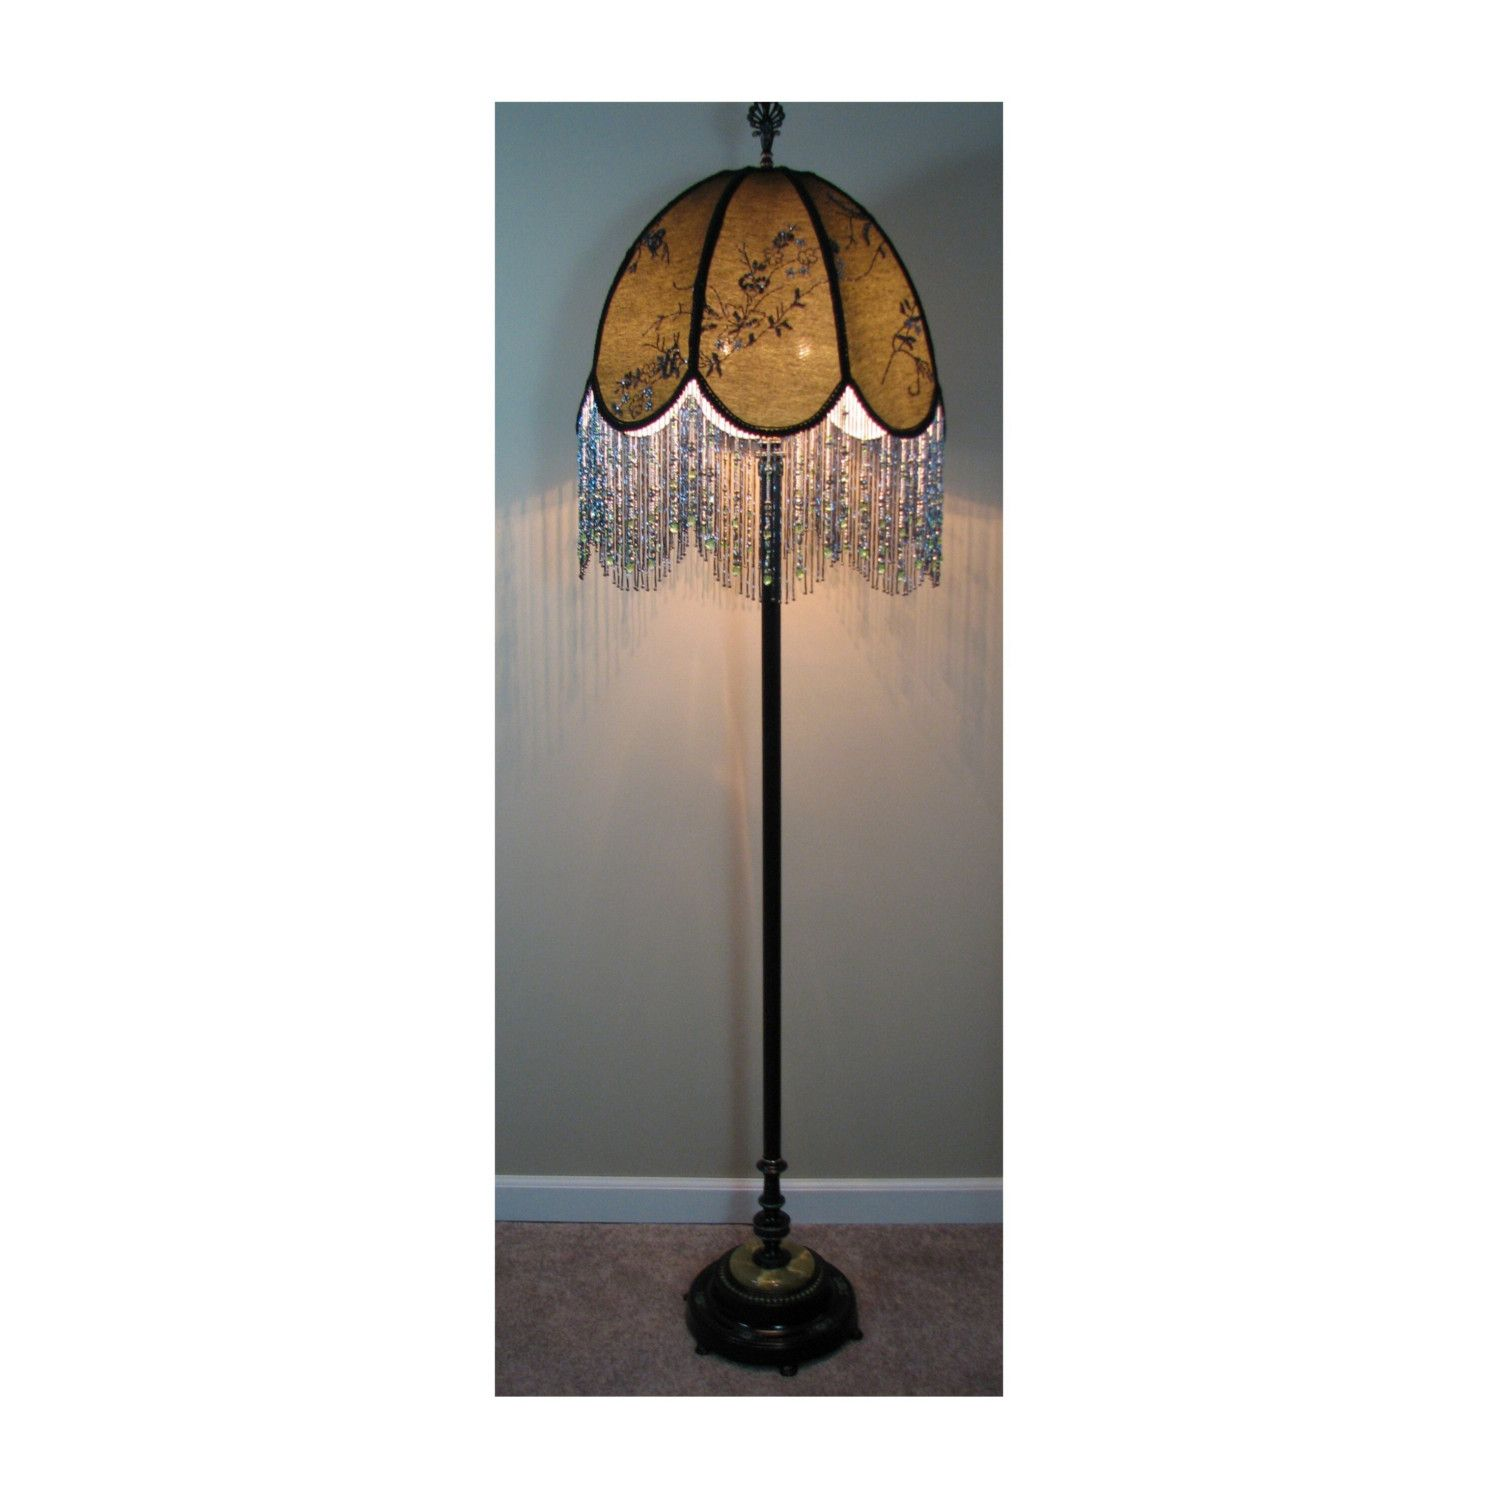 Beaded Floor Lamps: Vintage Floor Lamp with Victorian Lamp Shade - Evening in the Orient 0409.  $2,100.00,,Lighting